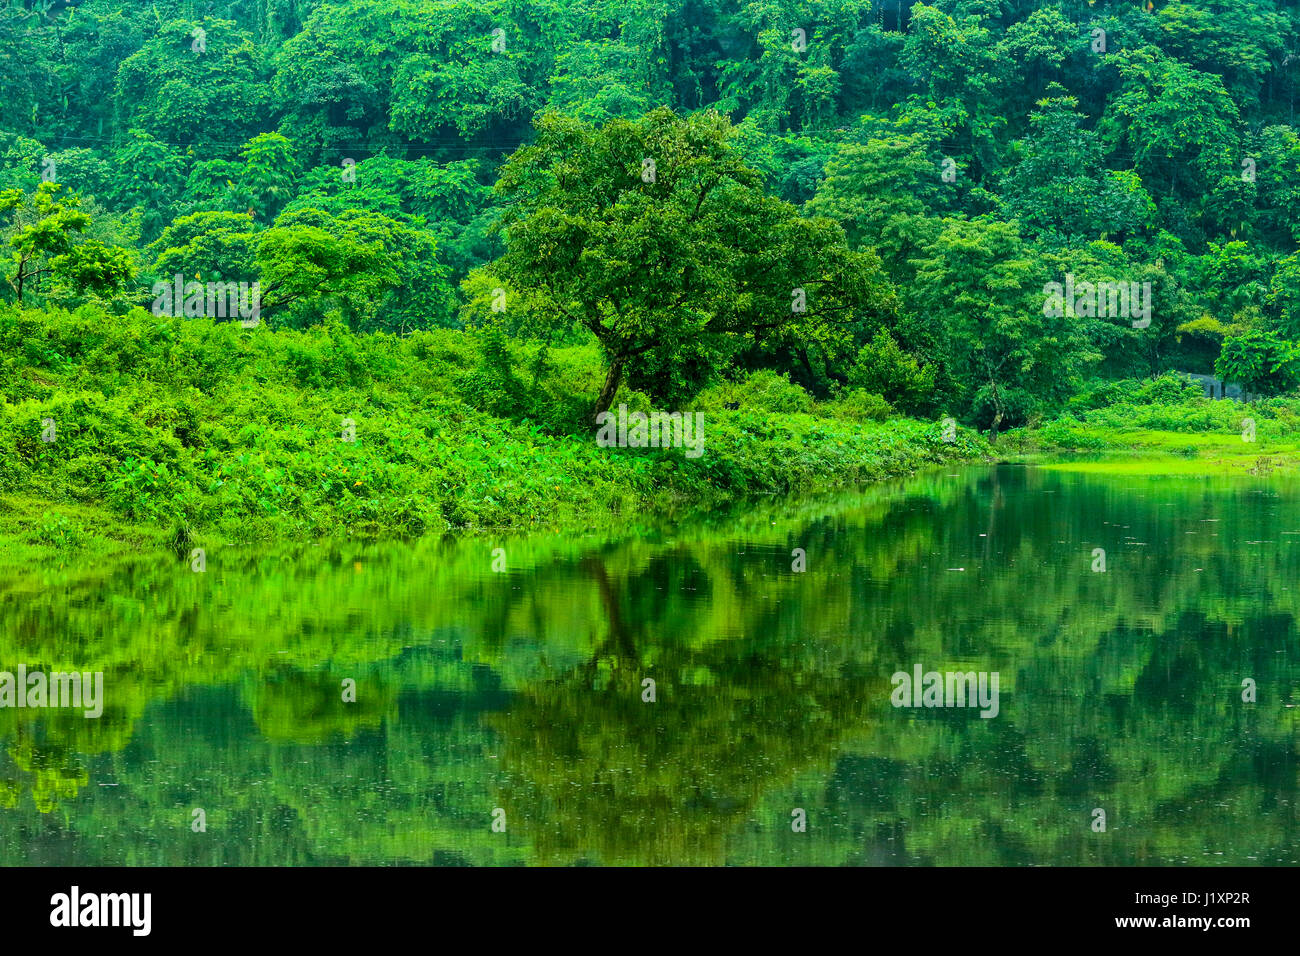 Landscape view of the Pangthumai – a beautiful village of